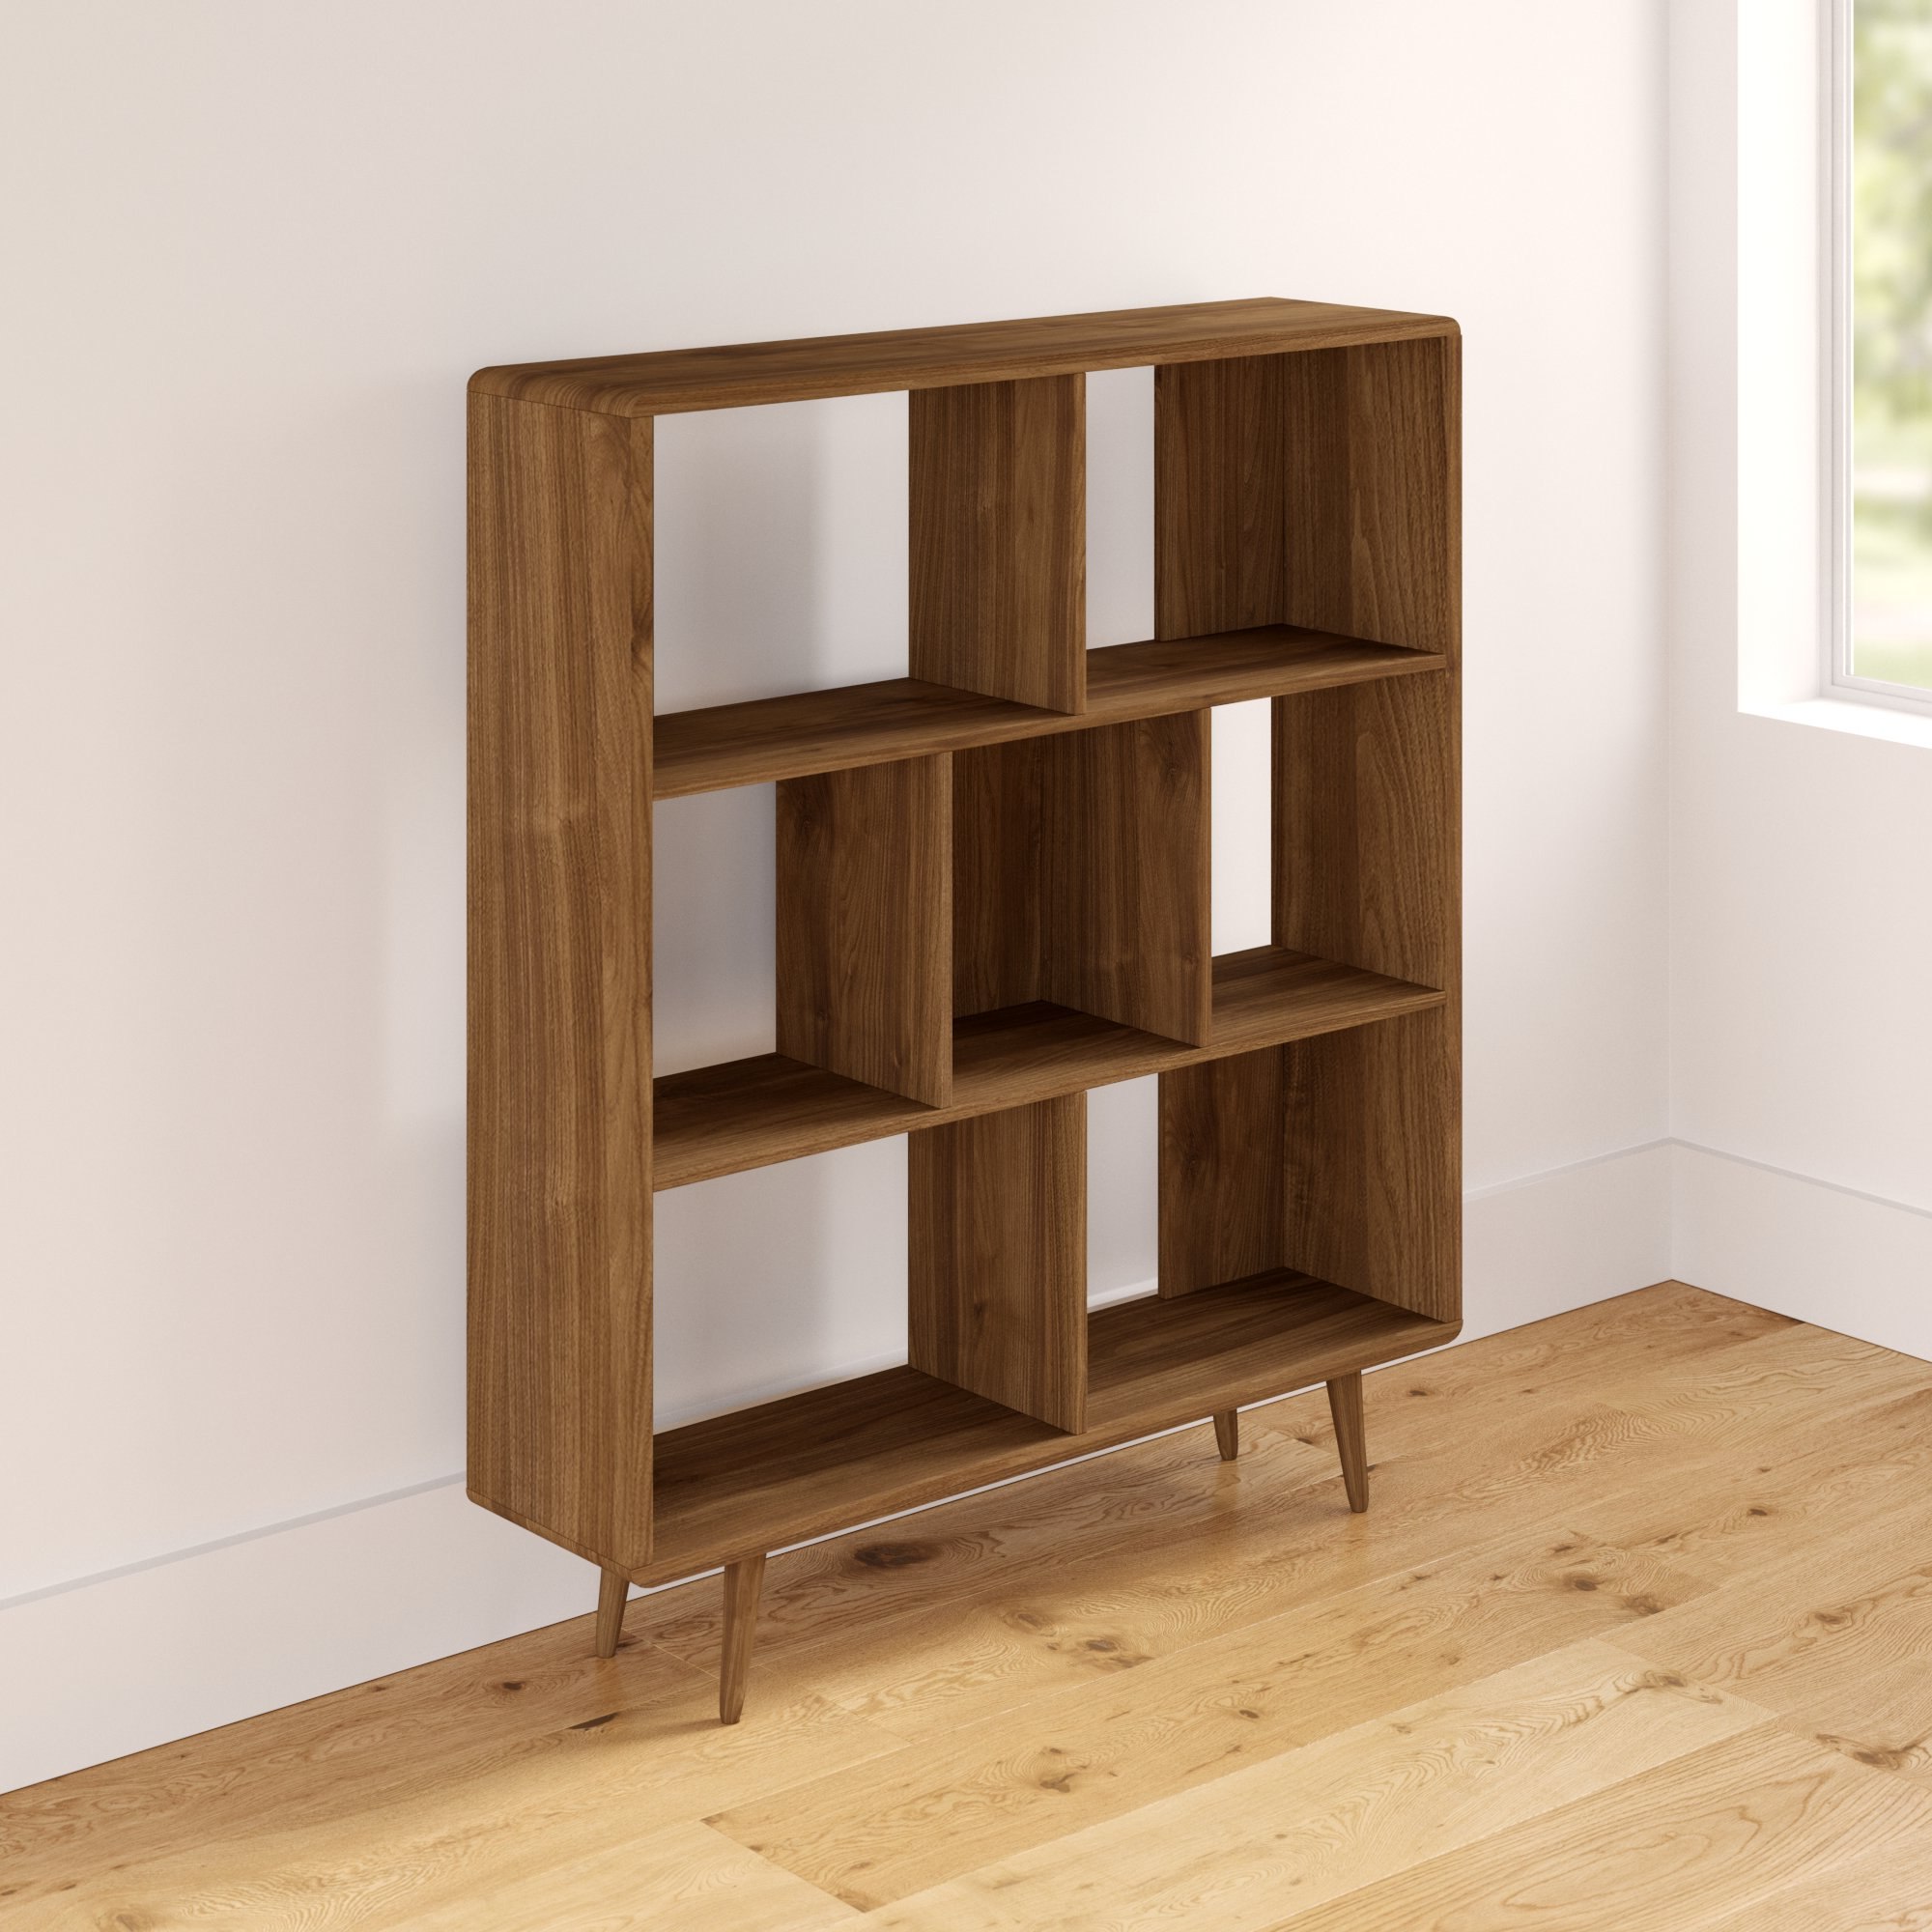 Skaggs Geometric Bookcases With Regard To Most Recently Released Chapple Geometric Bookcase (View 14 of 20)